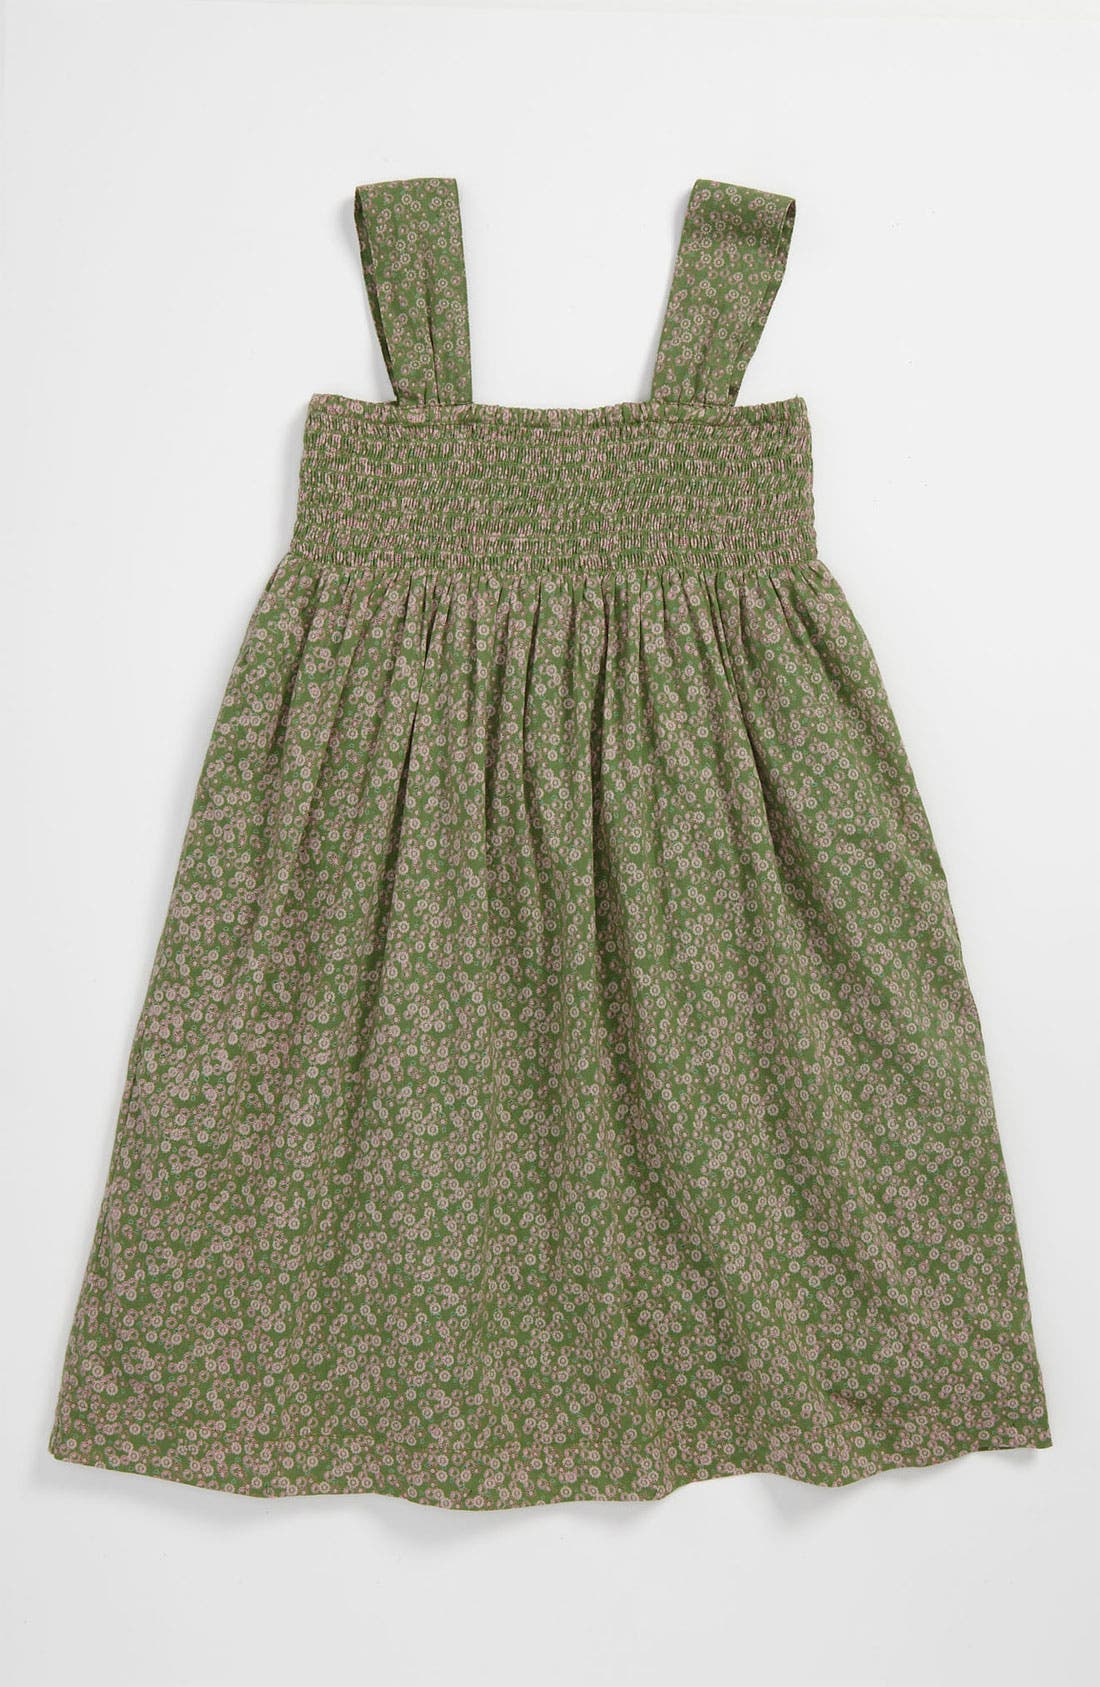 Alternate Image 1 Selected - Peek 'Camila' Dress (Toddler, Little Girls & Big Girls)